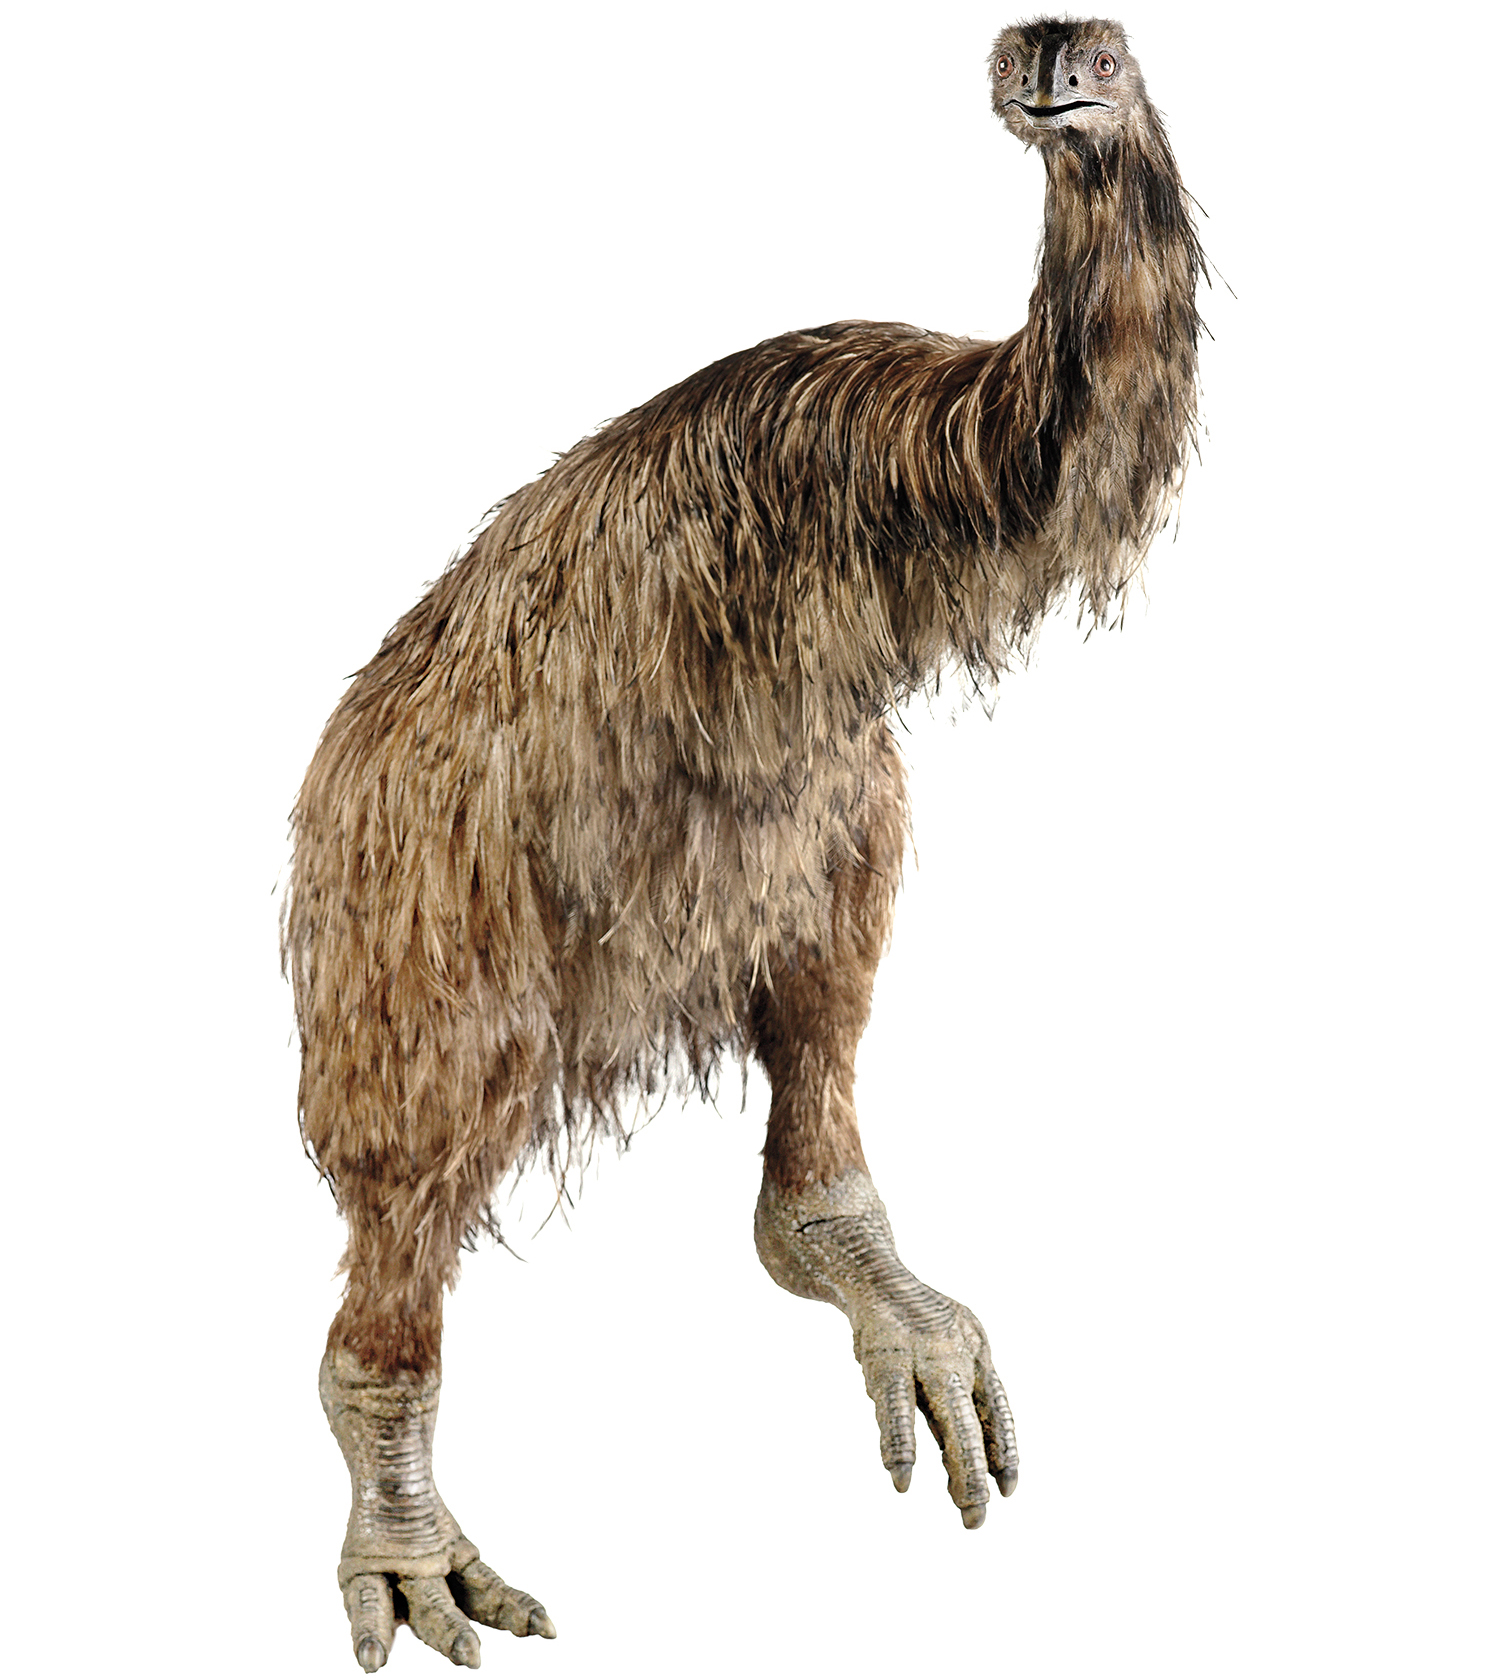 A life-sized model of an extinct Coastal Moa, built in 2006 by the firm Izzat Design Limited, is on display at the National Museum of New Zealand. TE PAPA/CC BY-NC-ND